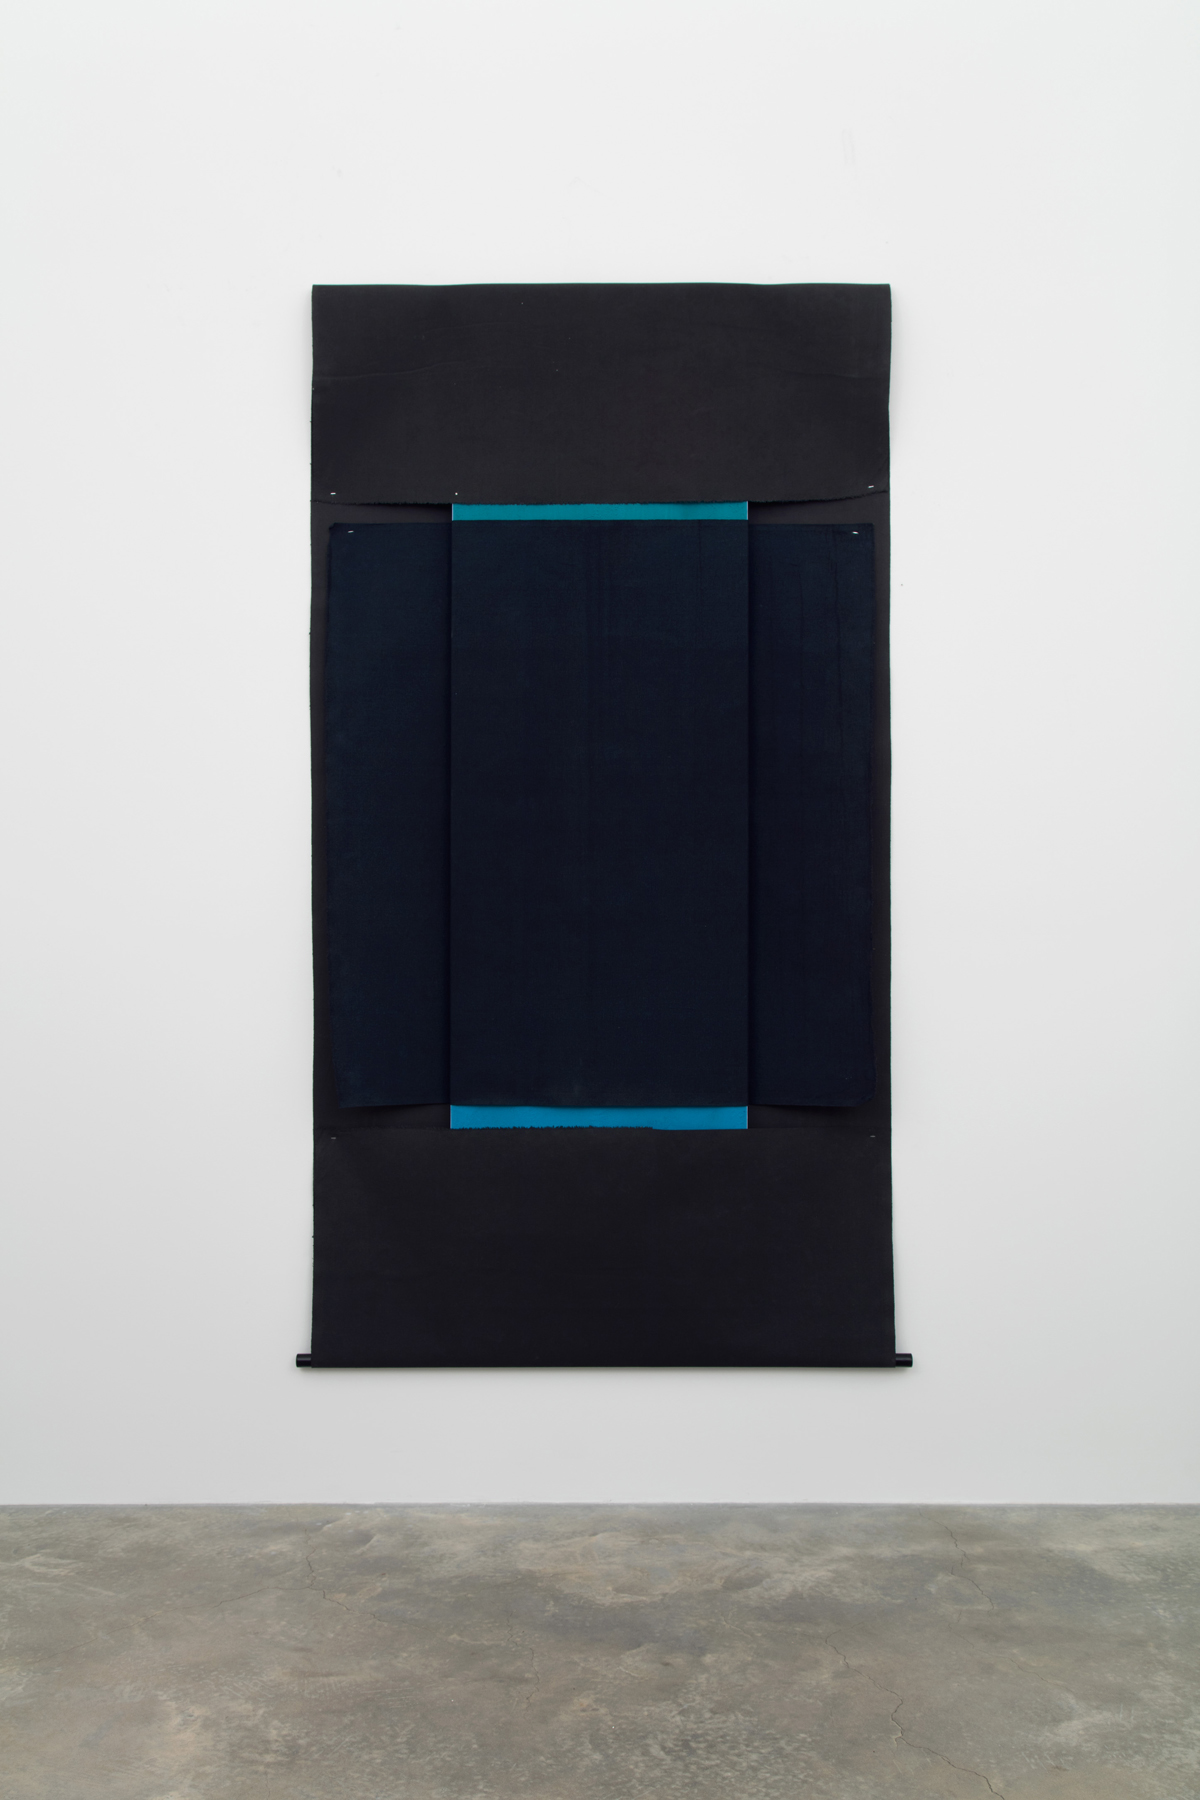 N. Dash Untitled, 2017; oil, pigment, acrylic, linen, wooden stick, wood support; photo Jean Vong; Courtesy the artist, Casey Kaplan Gallery, New York, and Mehdi Chouakri, Berlin